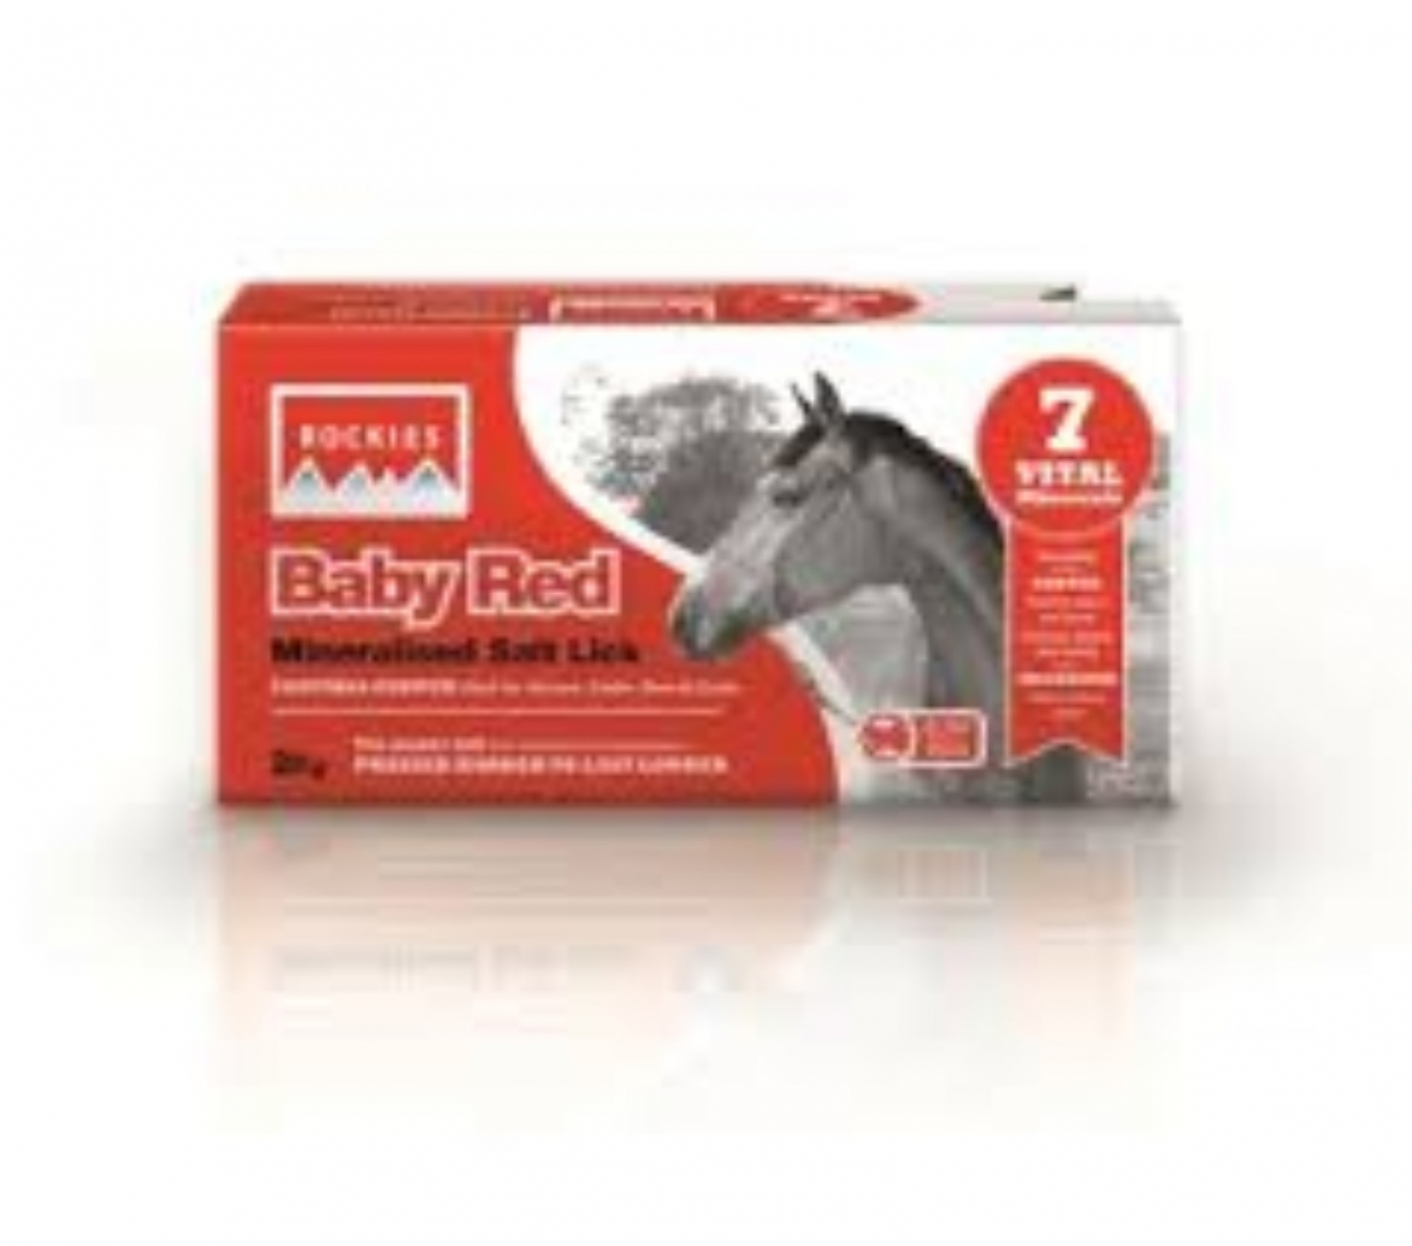 Rockies Baby Red Mineral Lick